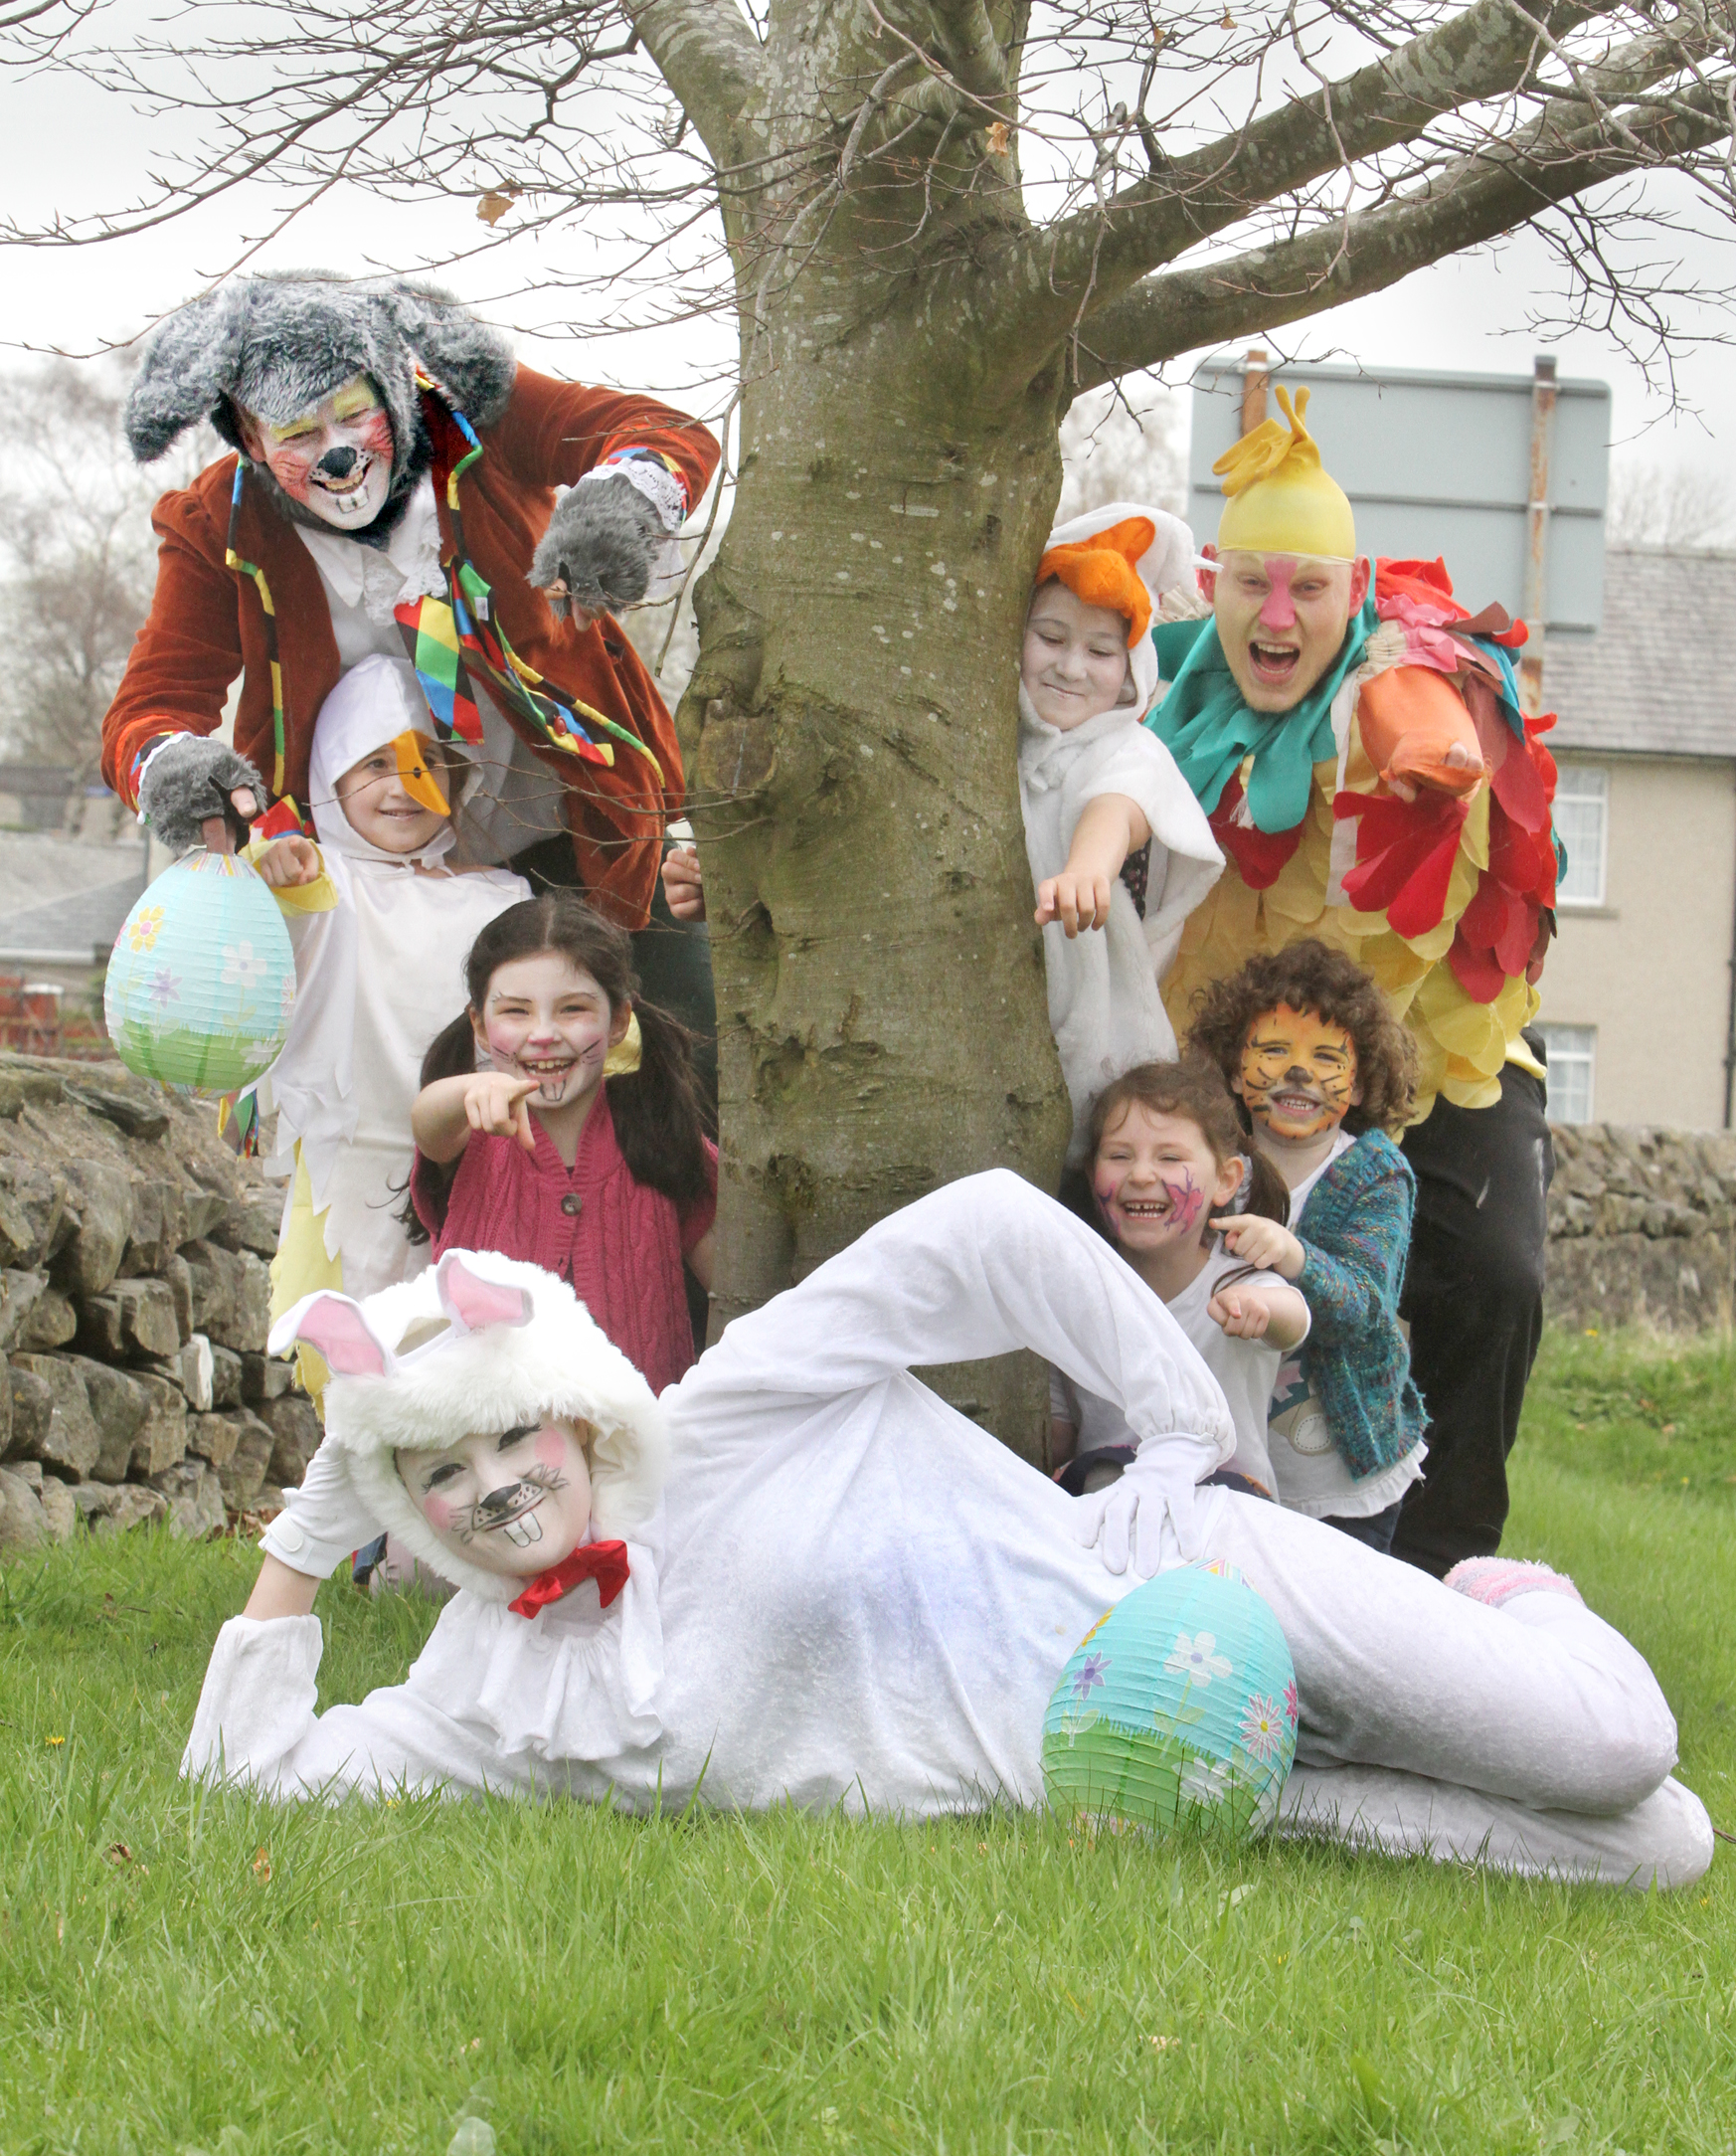 RABBITING ON: Ready for the Ingleton Easter Egg Hunt are Lesley Nemeth, Violet Brookdale, Jessica Nemeth, Dan Nemeth, Hazel Brookdale, Amilie Ashton, Kabel Taylor and Sophie Nemeth